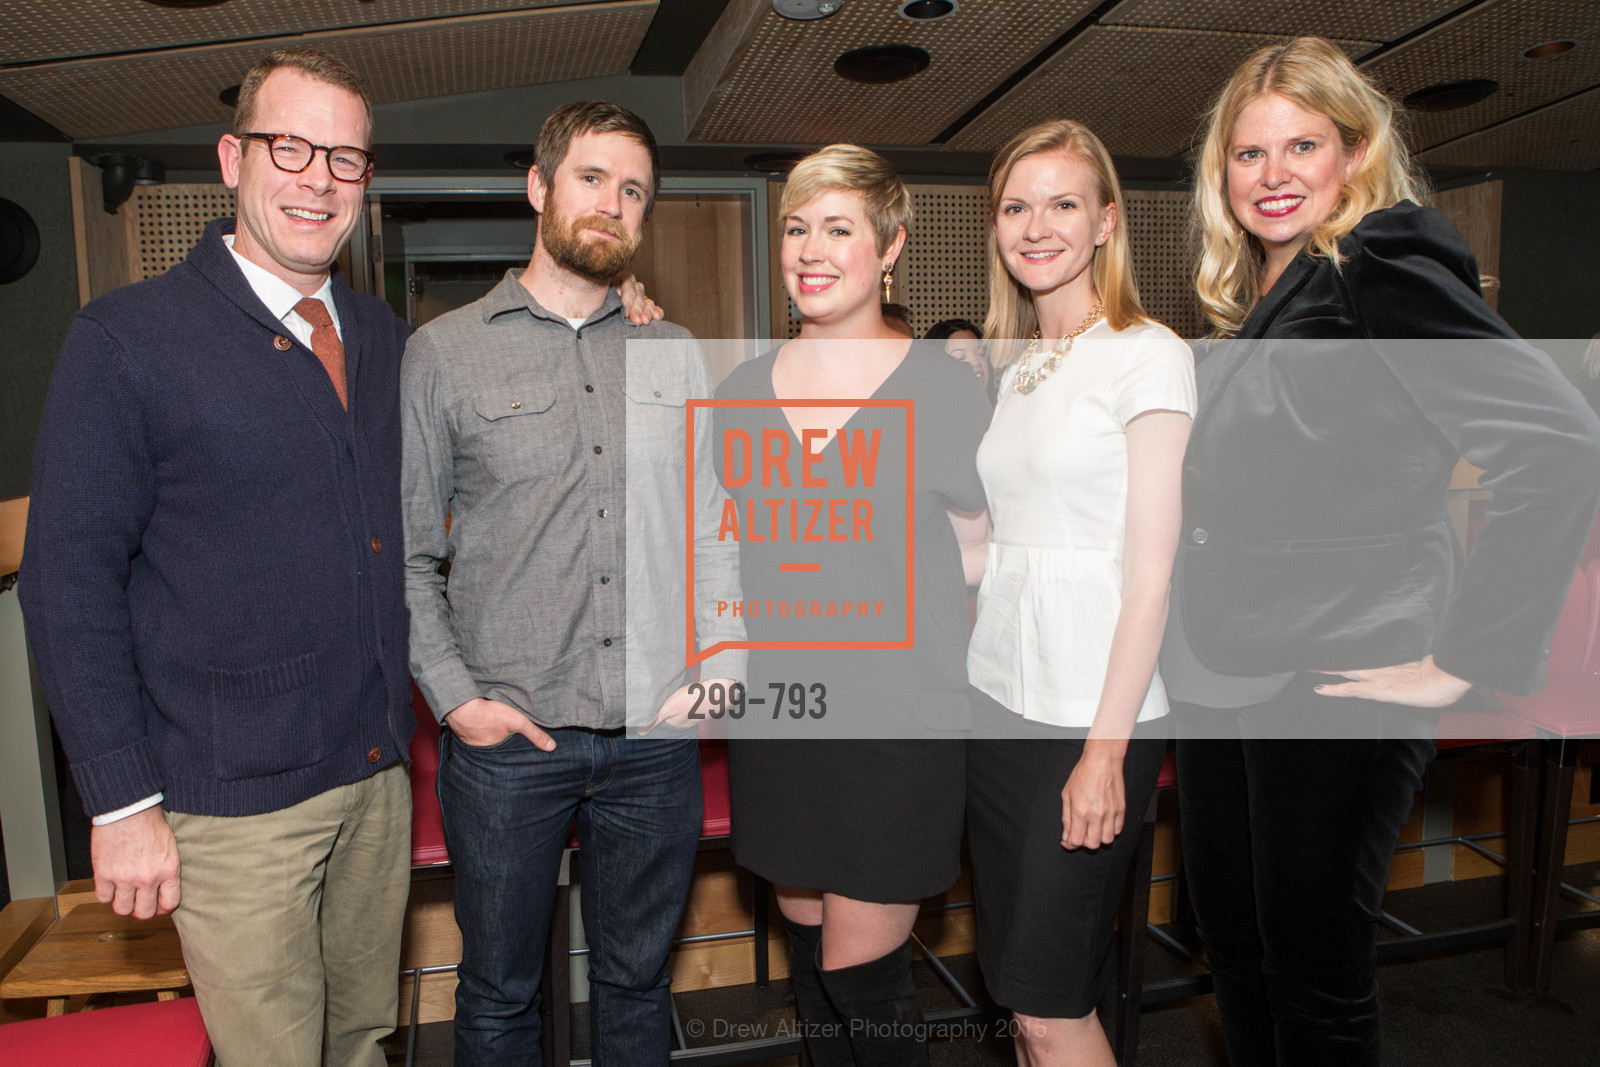 Benjamin Thompson, James Winstead, Sarah Lee, Greer Goings, Julie Warbough, SF BRAVO CLUB Sneak Peek at the EXPLORATORIUM, US, April 23rd, 2015,Drew Altizer, Drew Altizer Photography, full-service agency, private events, San Francisco photographer, photographer california